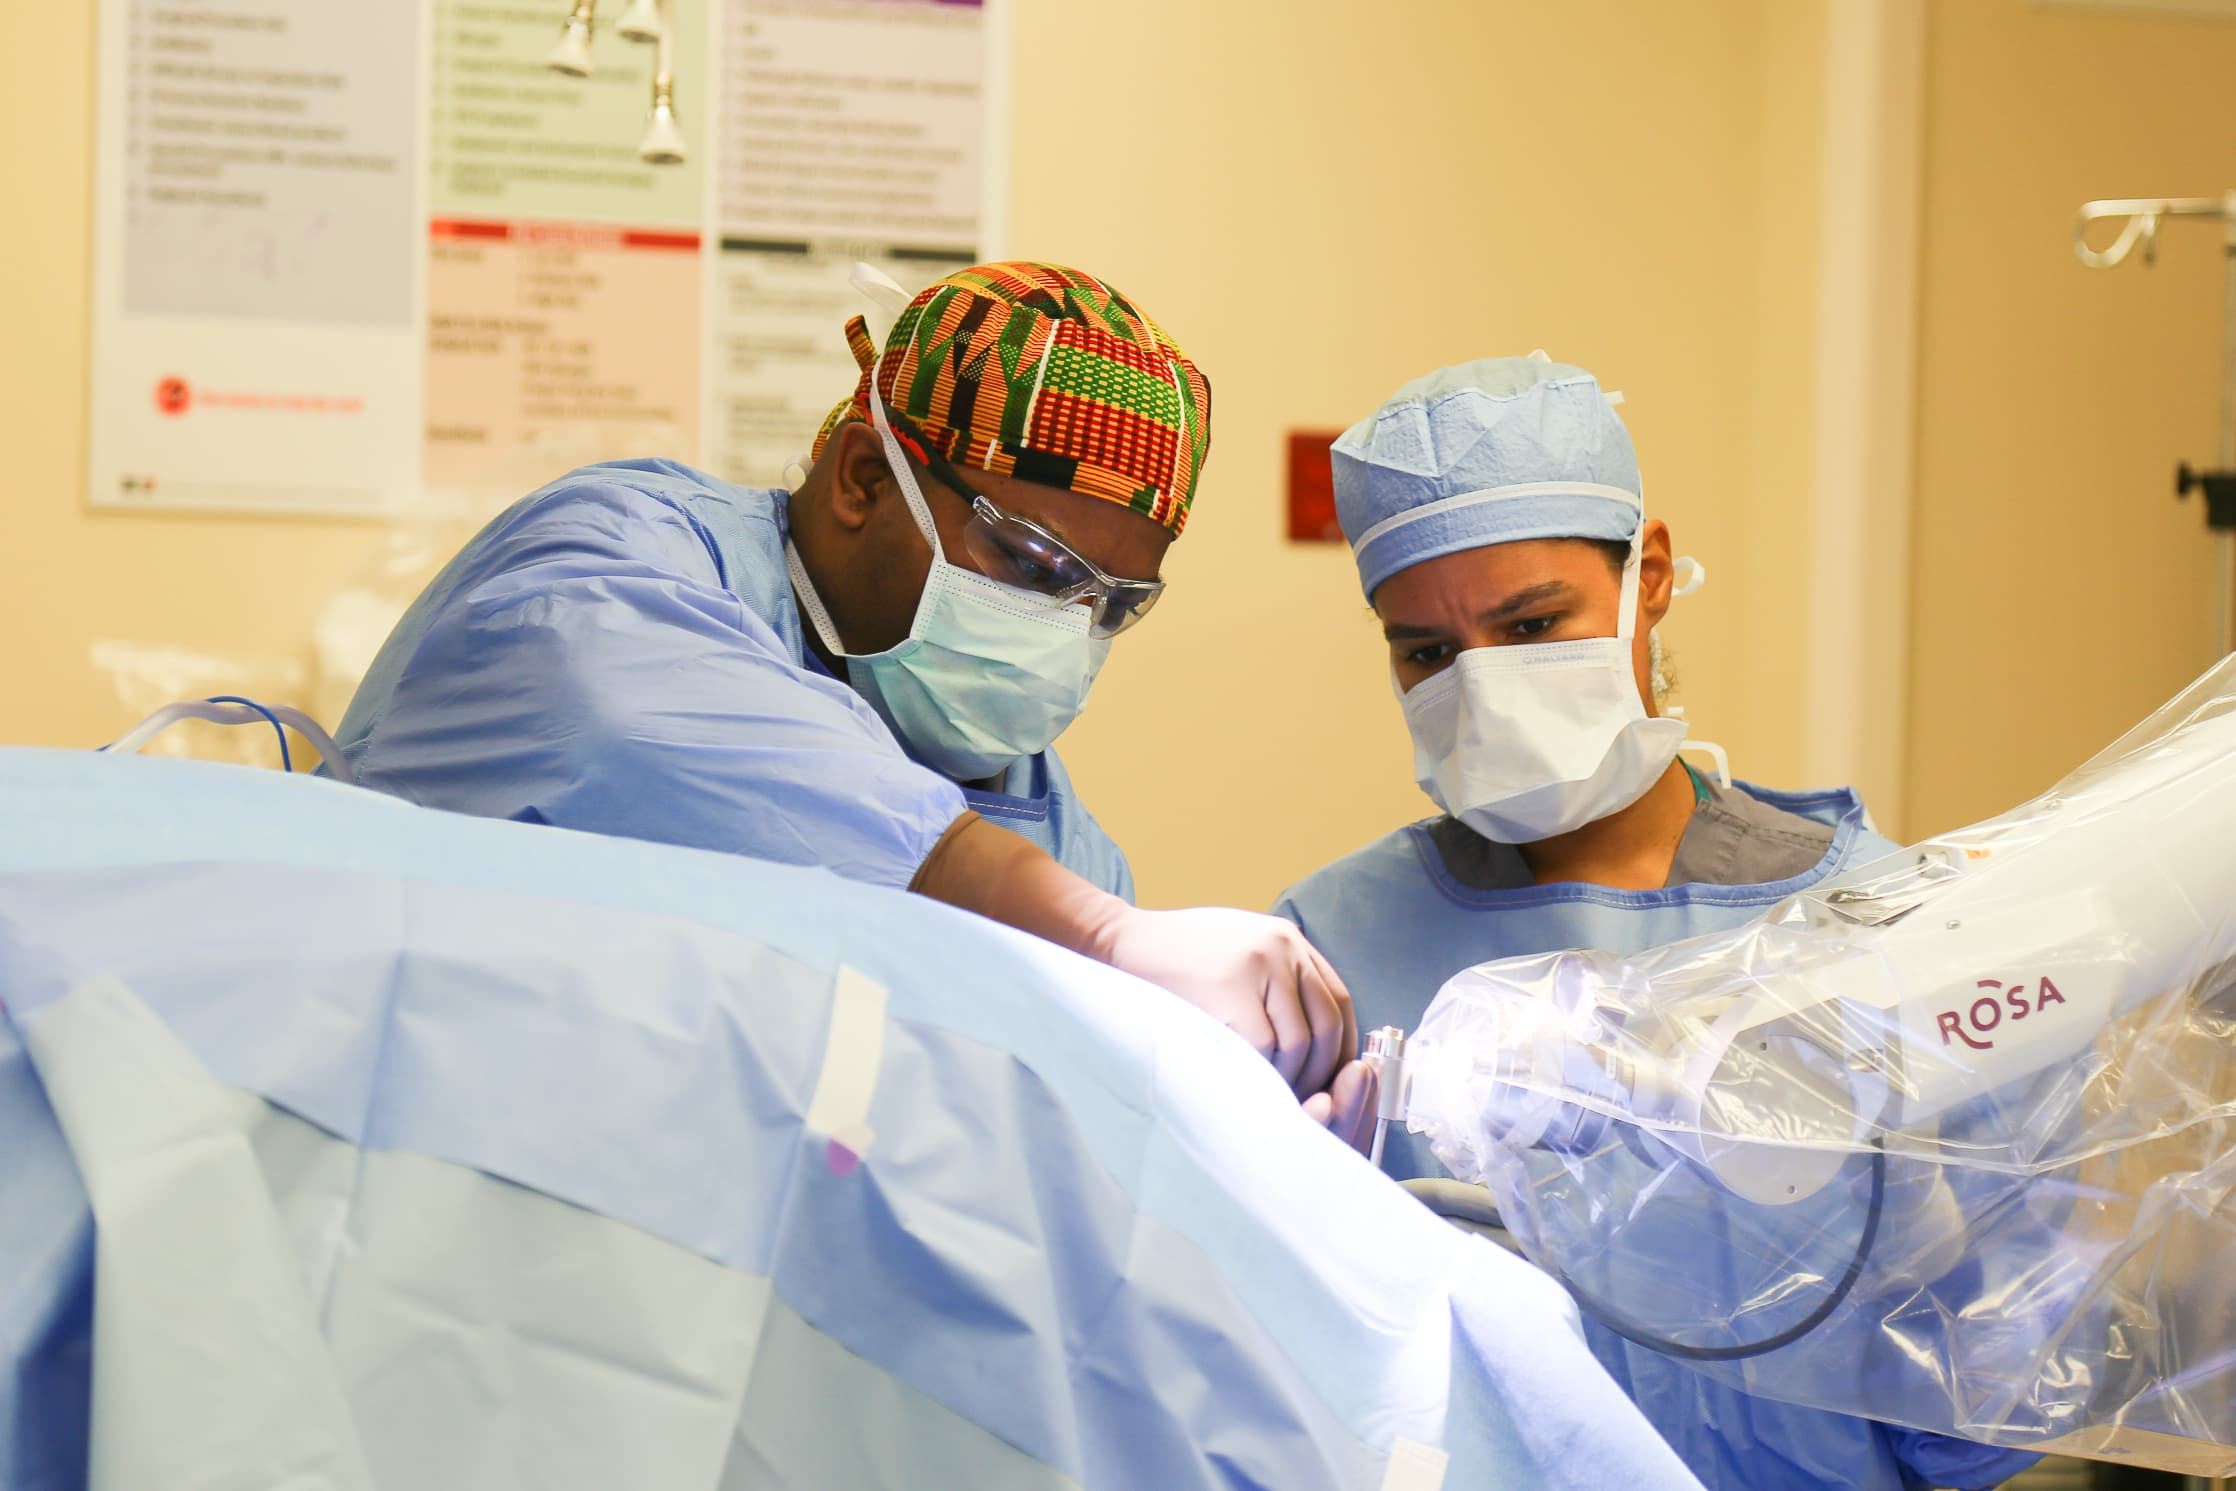 Analiz Rodriguez, M.D., Ph.D., and neurosurgical resident Marcus Stephens, M.D. perform surgery.